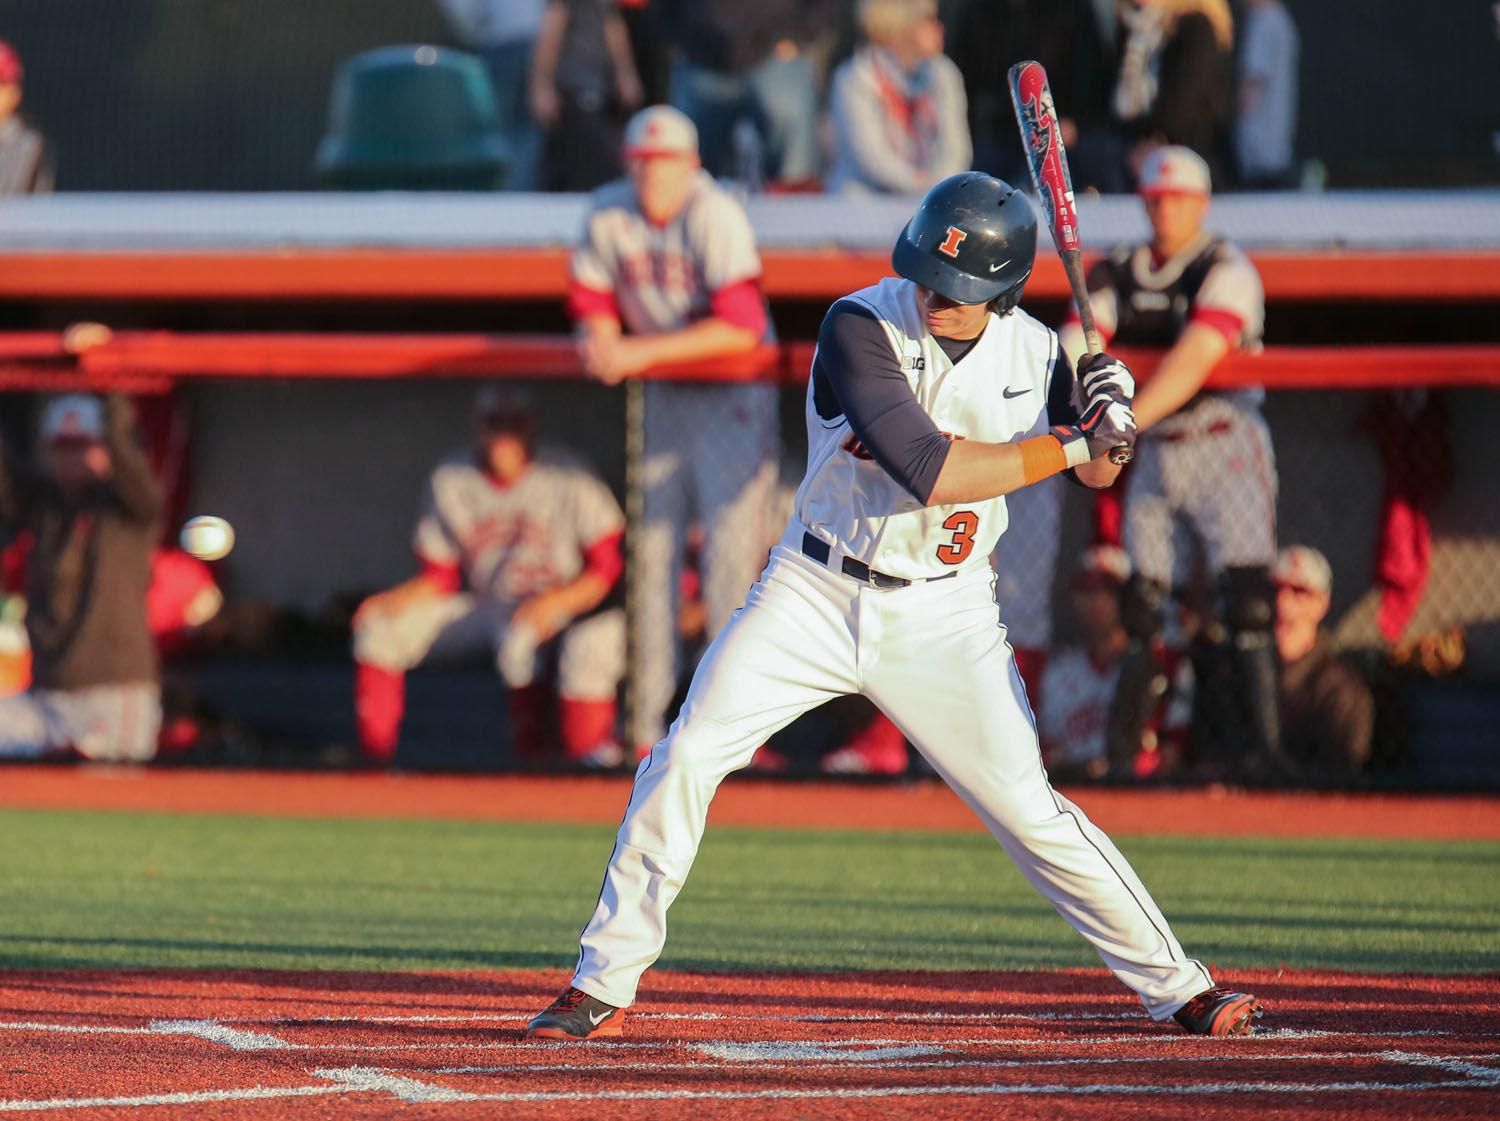 Illinois' Casey Fletcher (3) up at bat during the game against Indiana at Illinois Field on Friday, April 25, 2014. The Illini lost 9-3